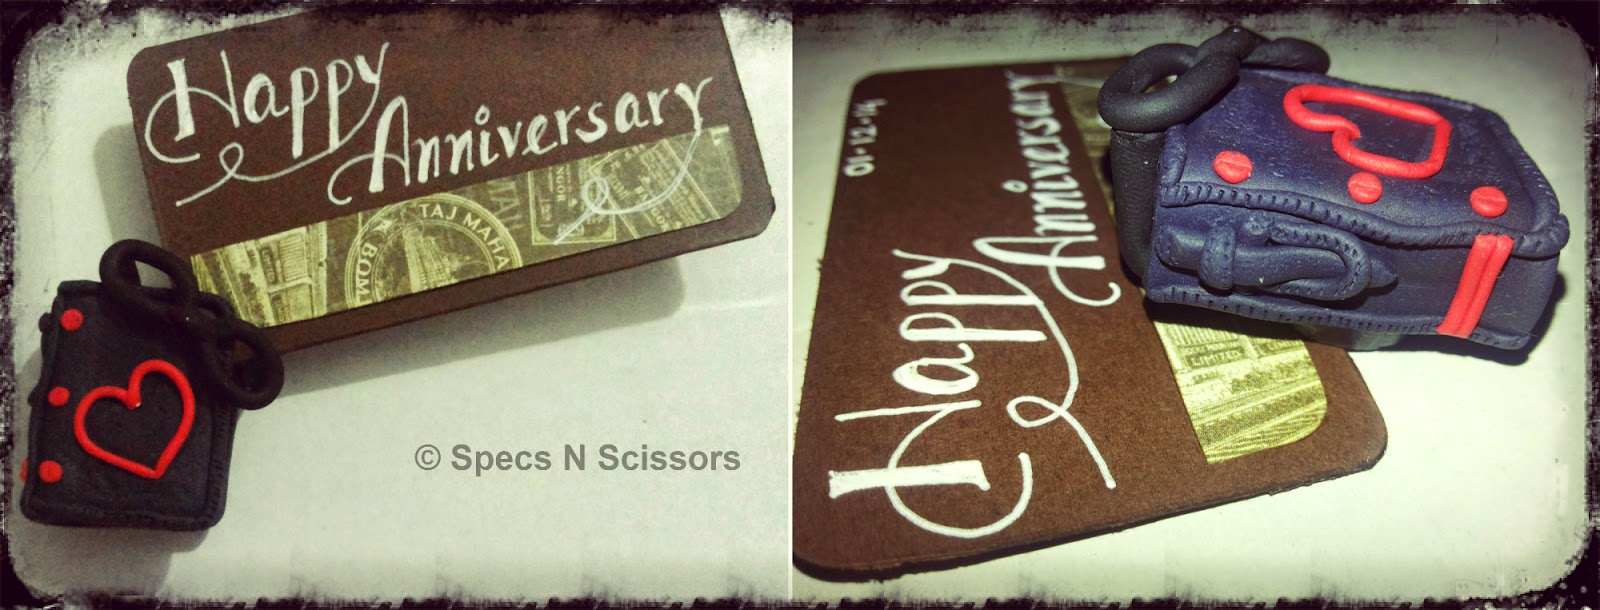 Specs N Scissors - Customized Gifts - Magnet Message Holder